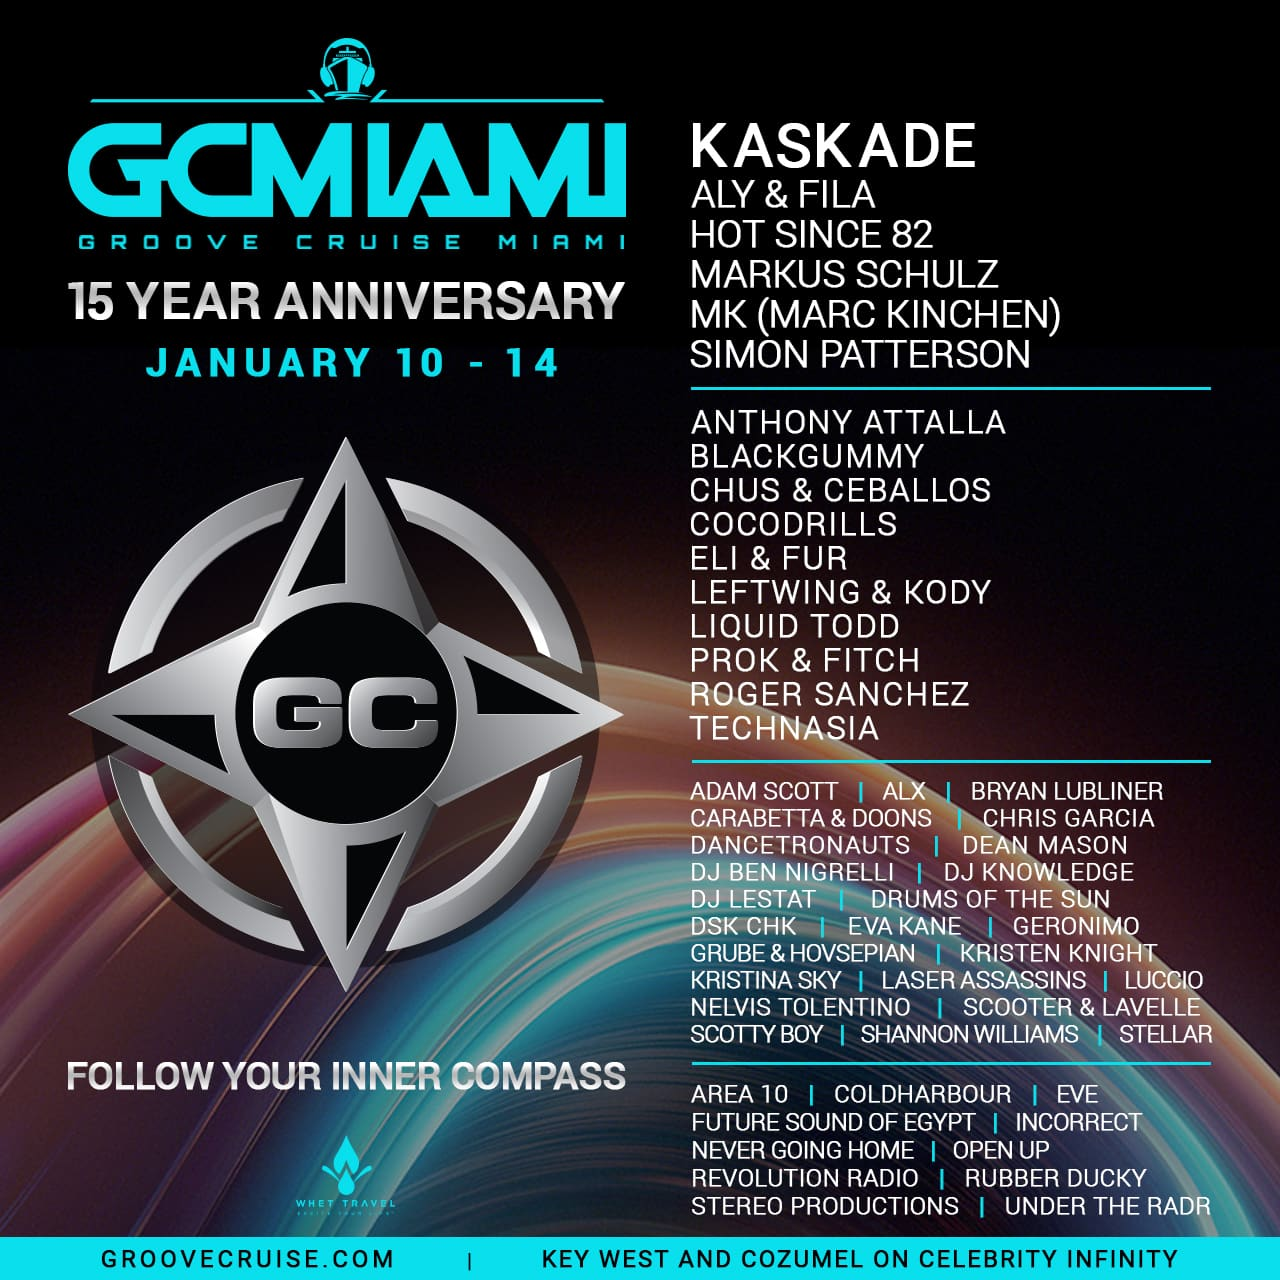 Groove Cruise Miami 2019 - Groove Cruise Miami 2019 Celebrates 15th Anniversary & Announces Phase I Lineup Feat. Kaskade, Aly & Fila, Hot Since 82, Mk, Markus Schulz, Simon Patterson + More!